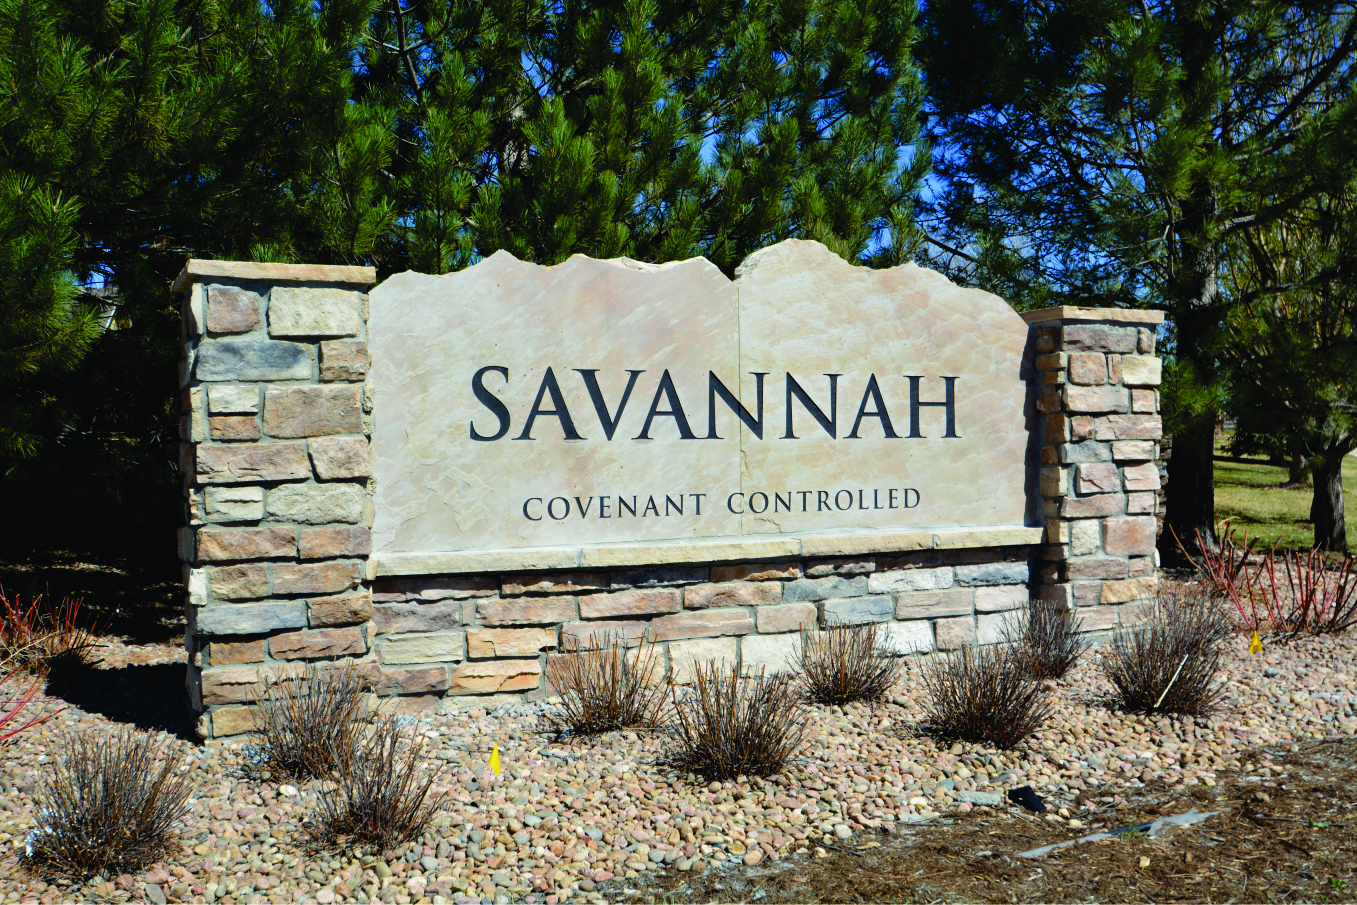 New etched stone monument for savannah hoa architectural for Landscaping rocks savannah ga